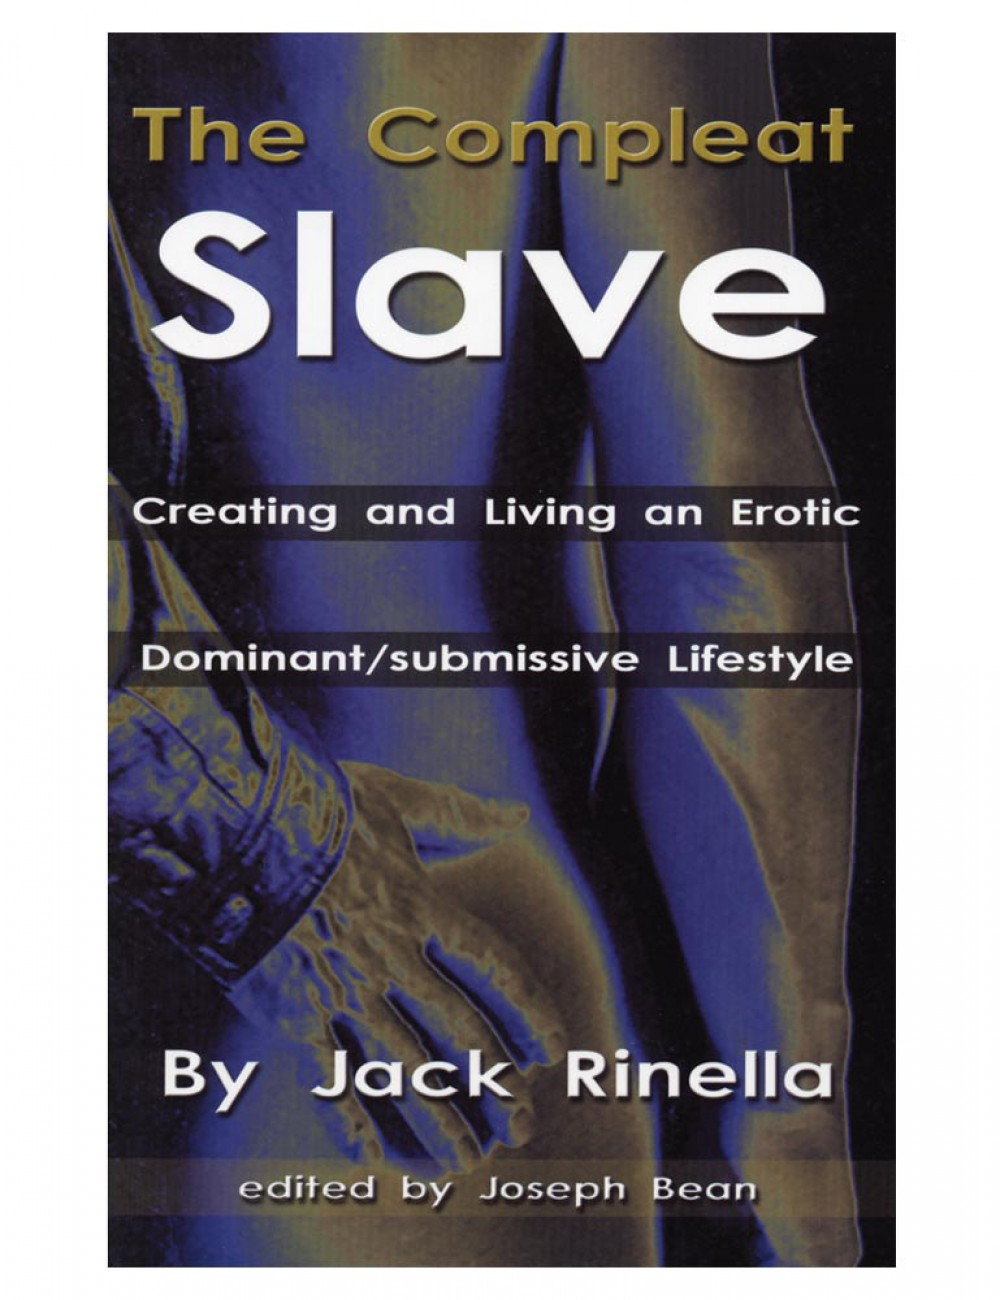 The Compleat Slave (Jack Rinella)